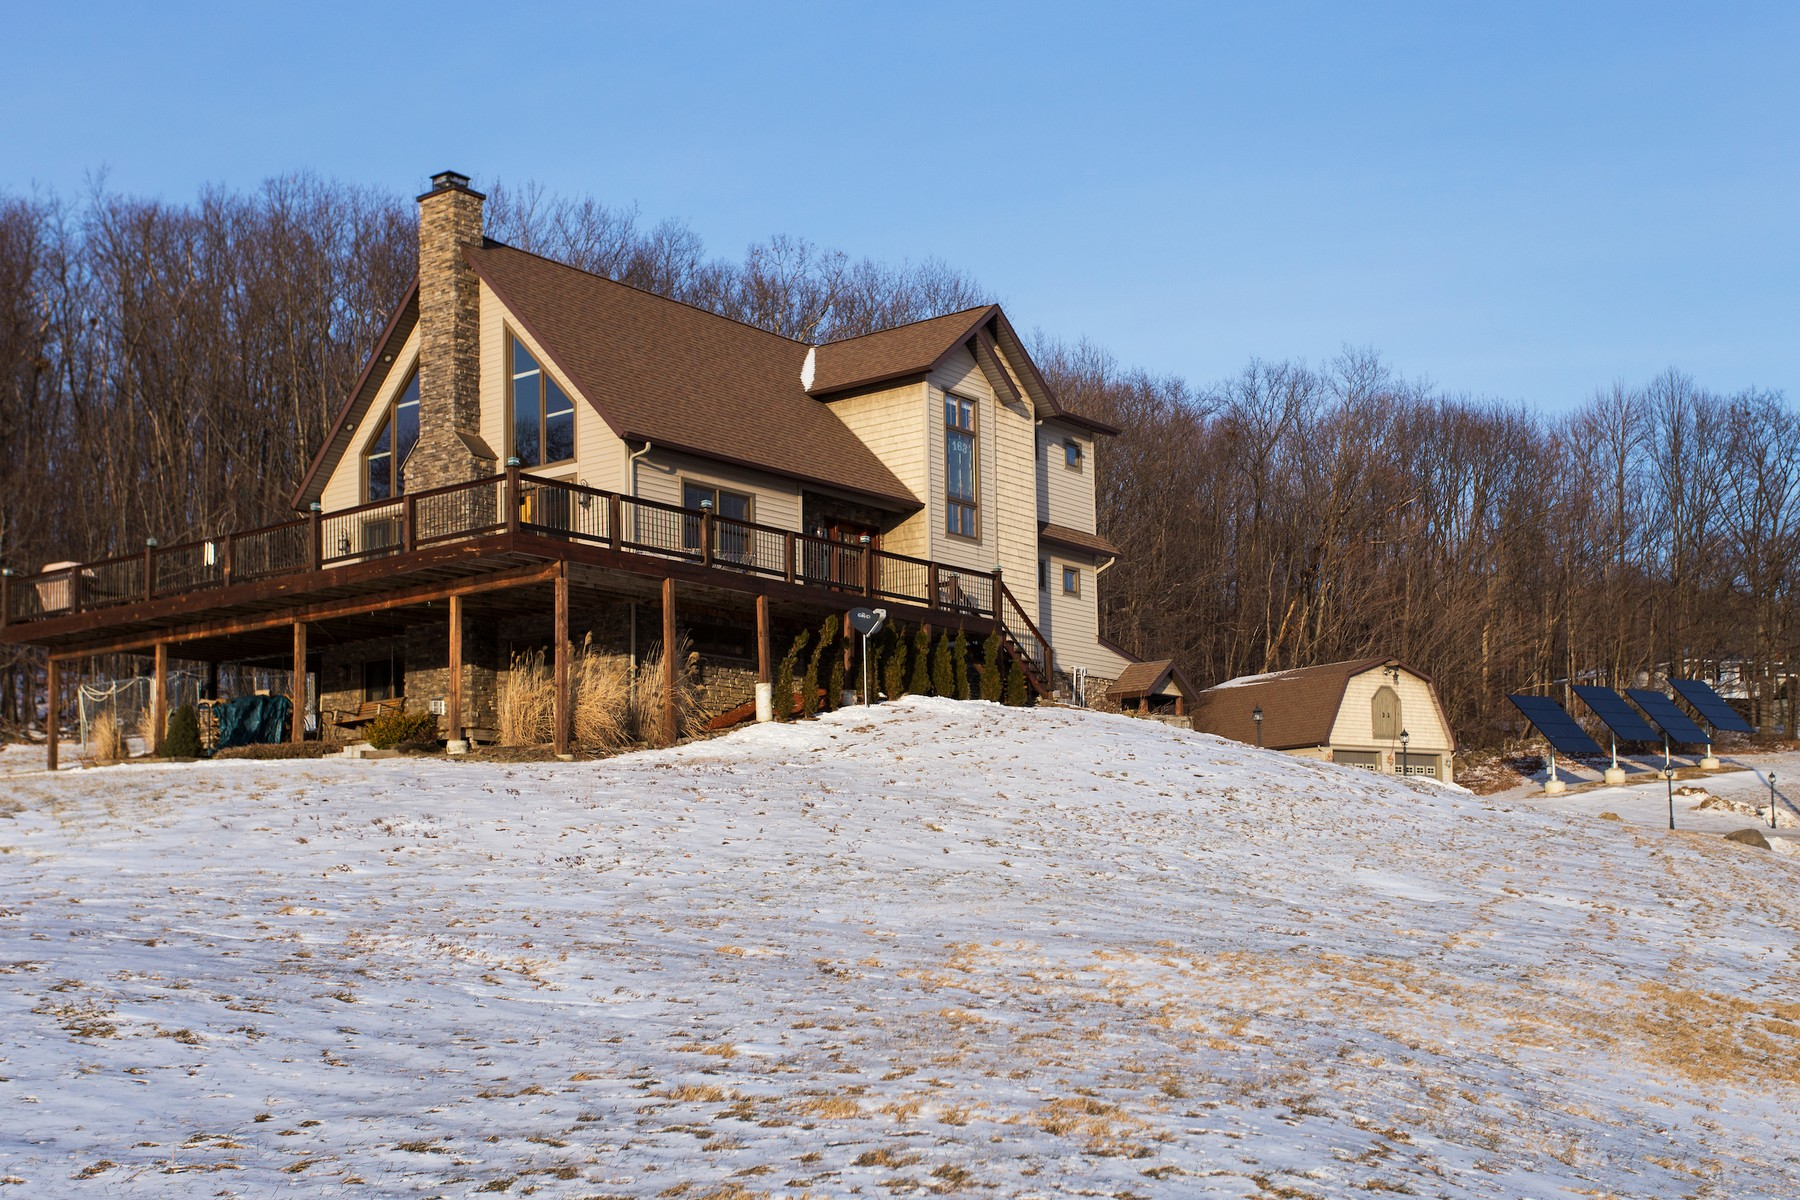 Additional photo for property listing at Breathtaking Home With View of Surrounding Hilltop 163  Pope Hill Rd Argyle, New York 12809 United States